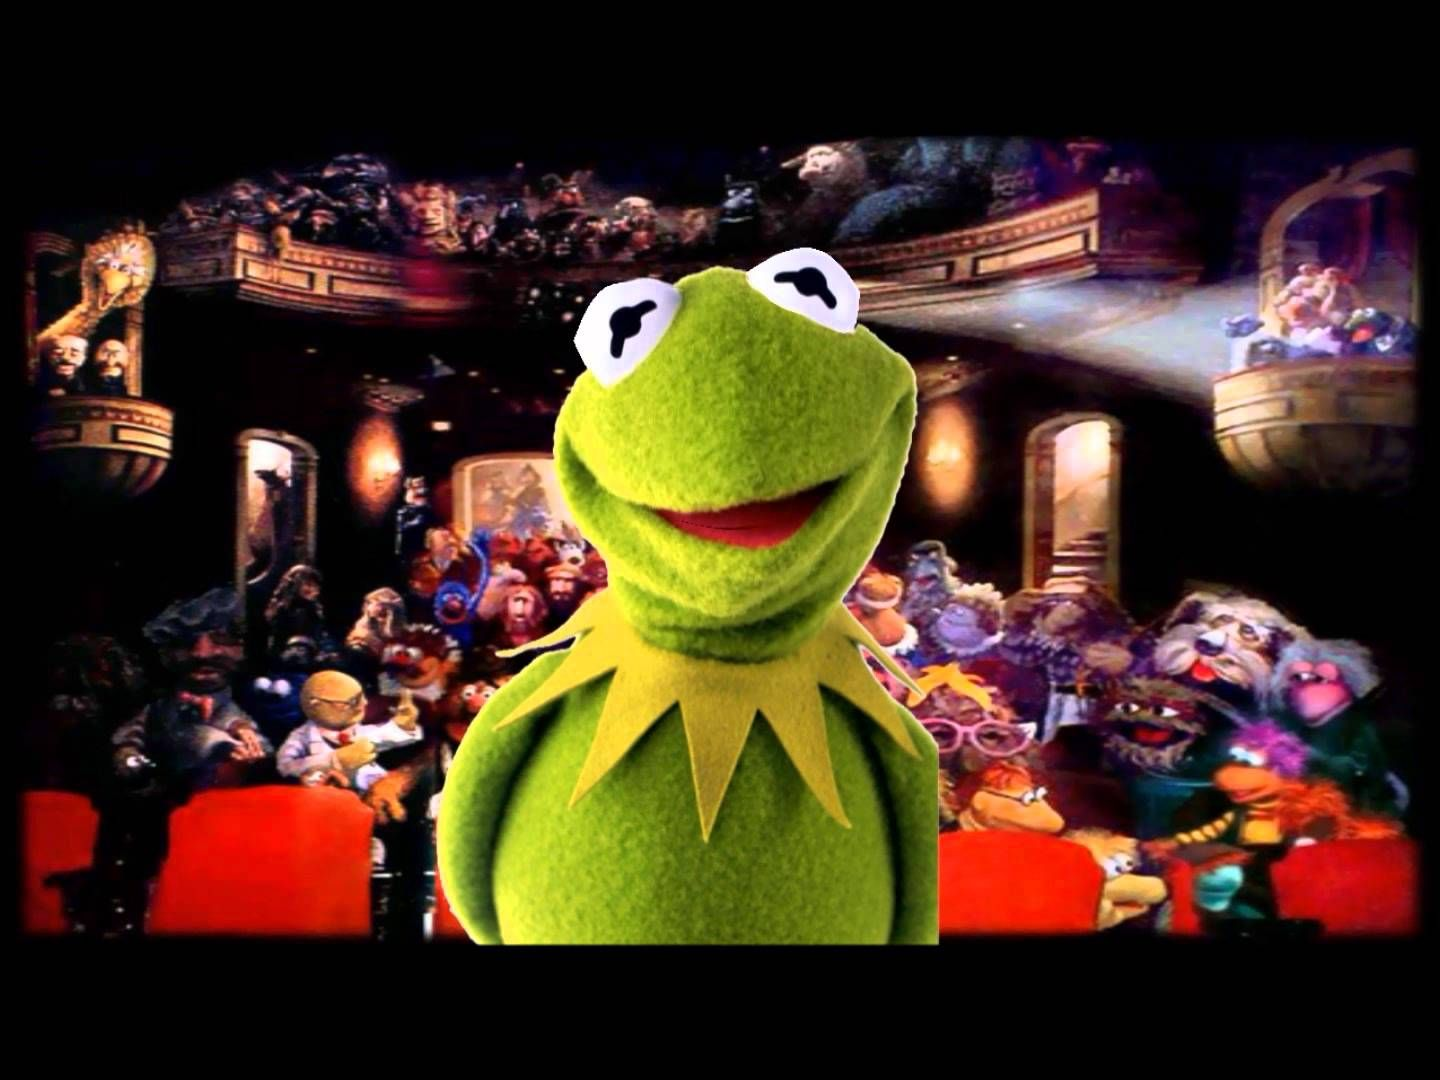 Happy birthday song sung specially for you by kermit the frog from happy birthday song sung specially for you by kermit the frog from the m bookmarktalkfo Image collections